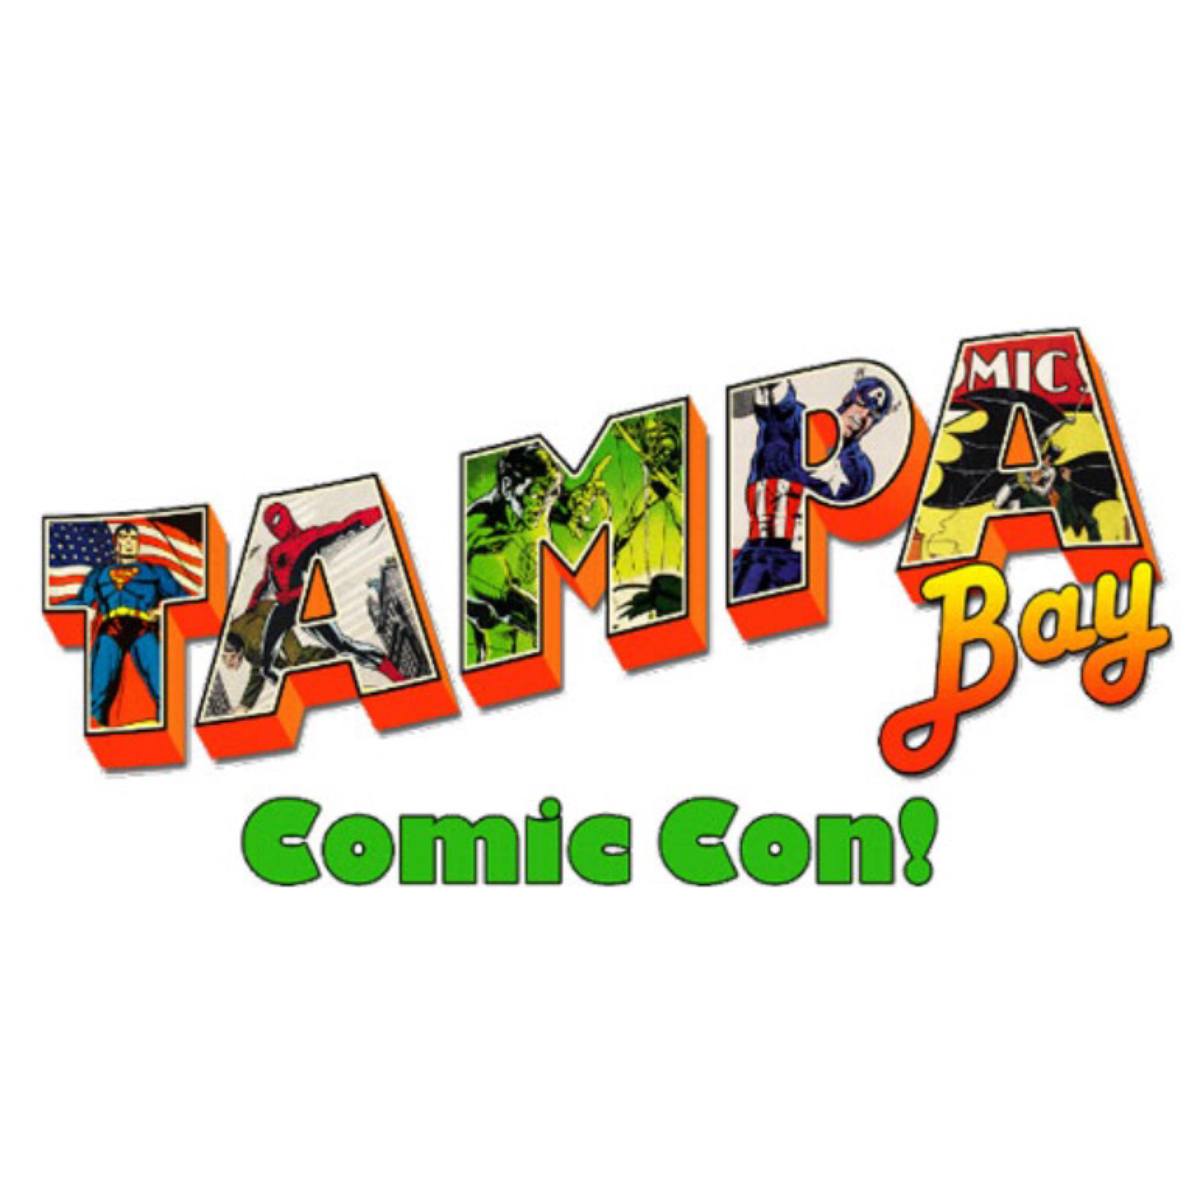 IT'S ALMOST HERE! @TampaComicCon is 7/31- 8/2! Have you registered yet? Visit @HeroesHaven to get your gear! #DoStuff http://t.co/5Z0MOV3D3I